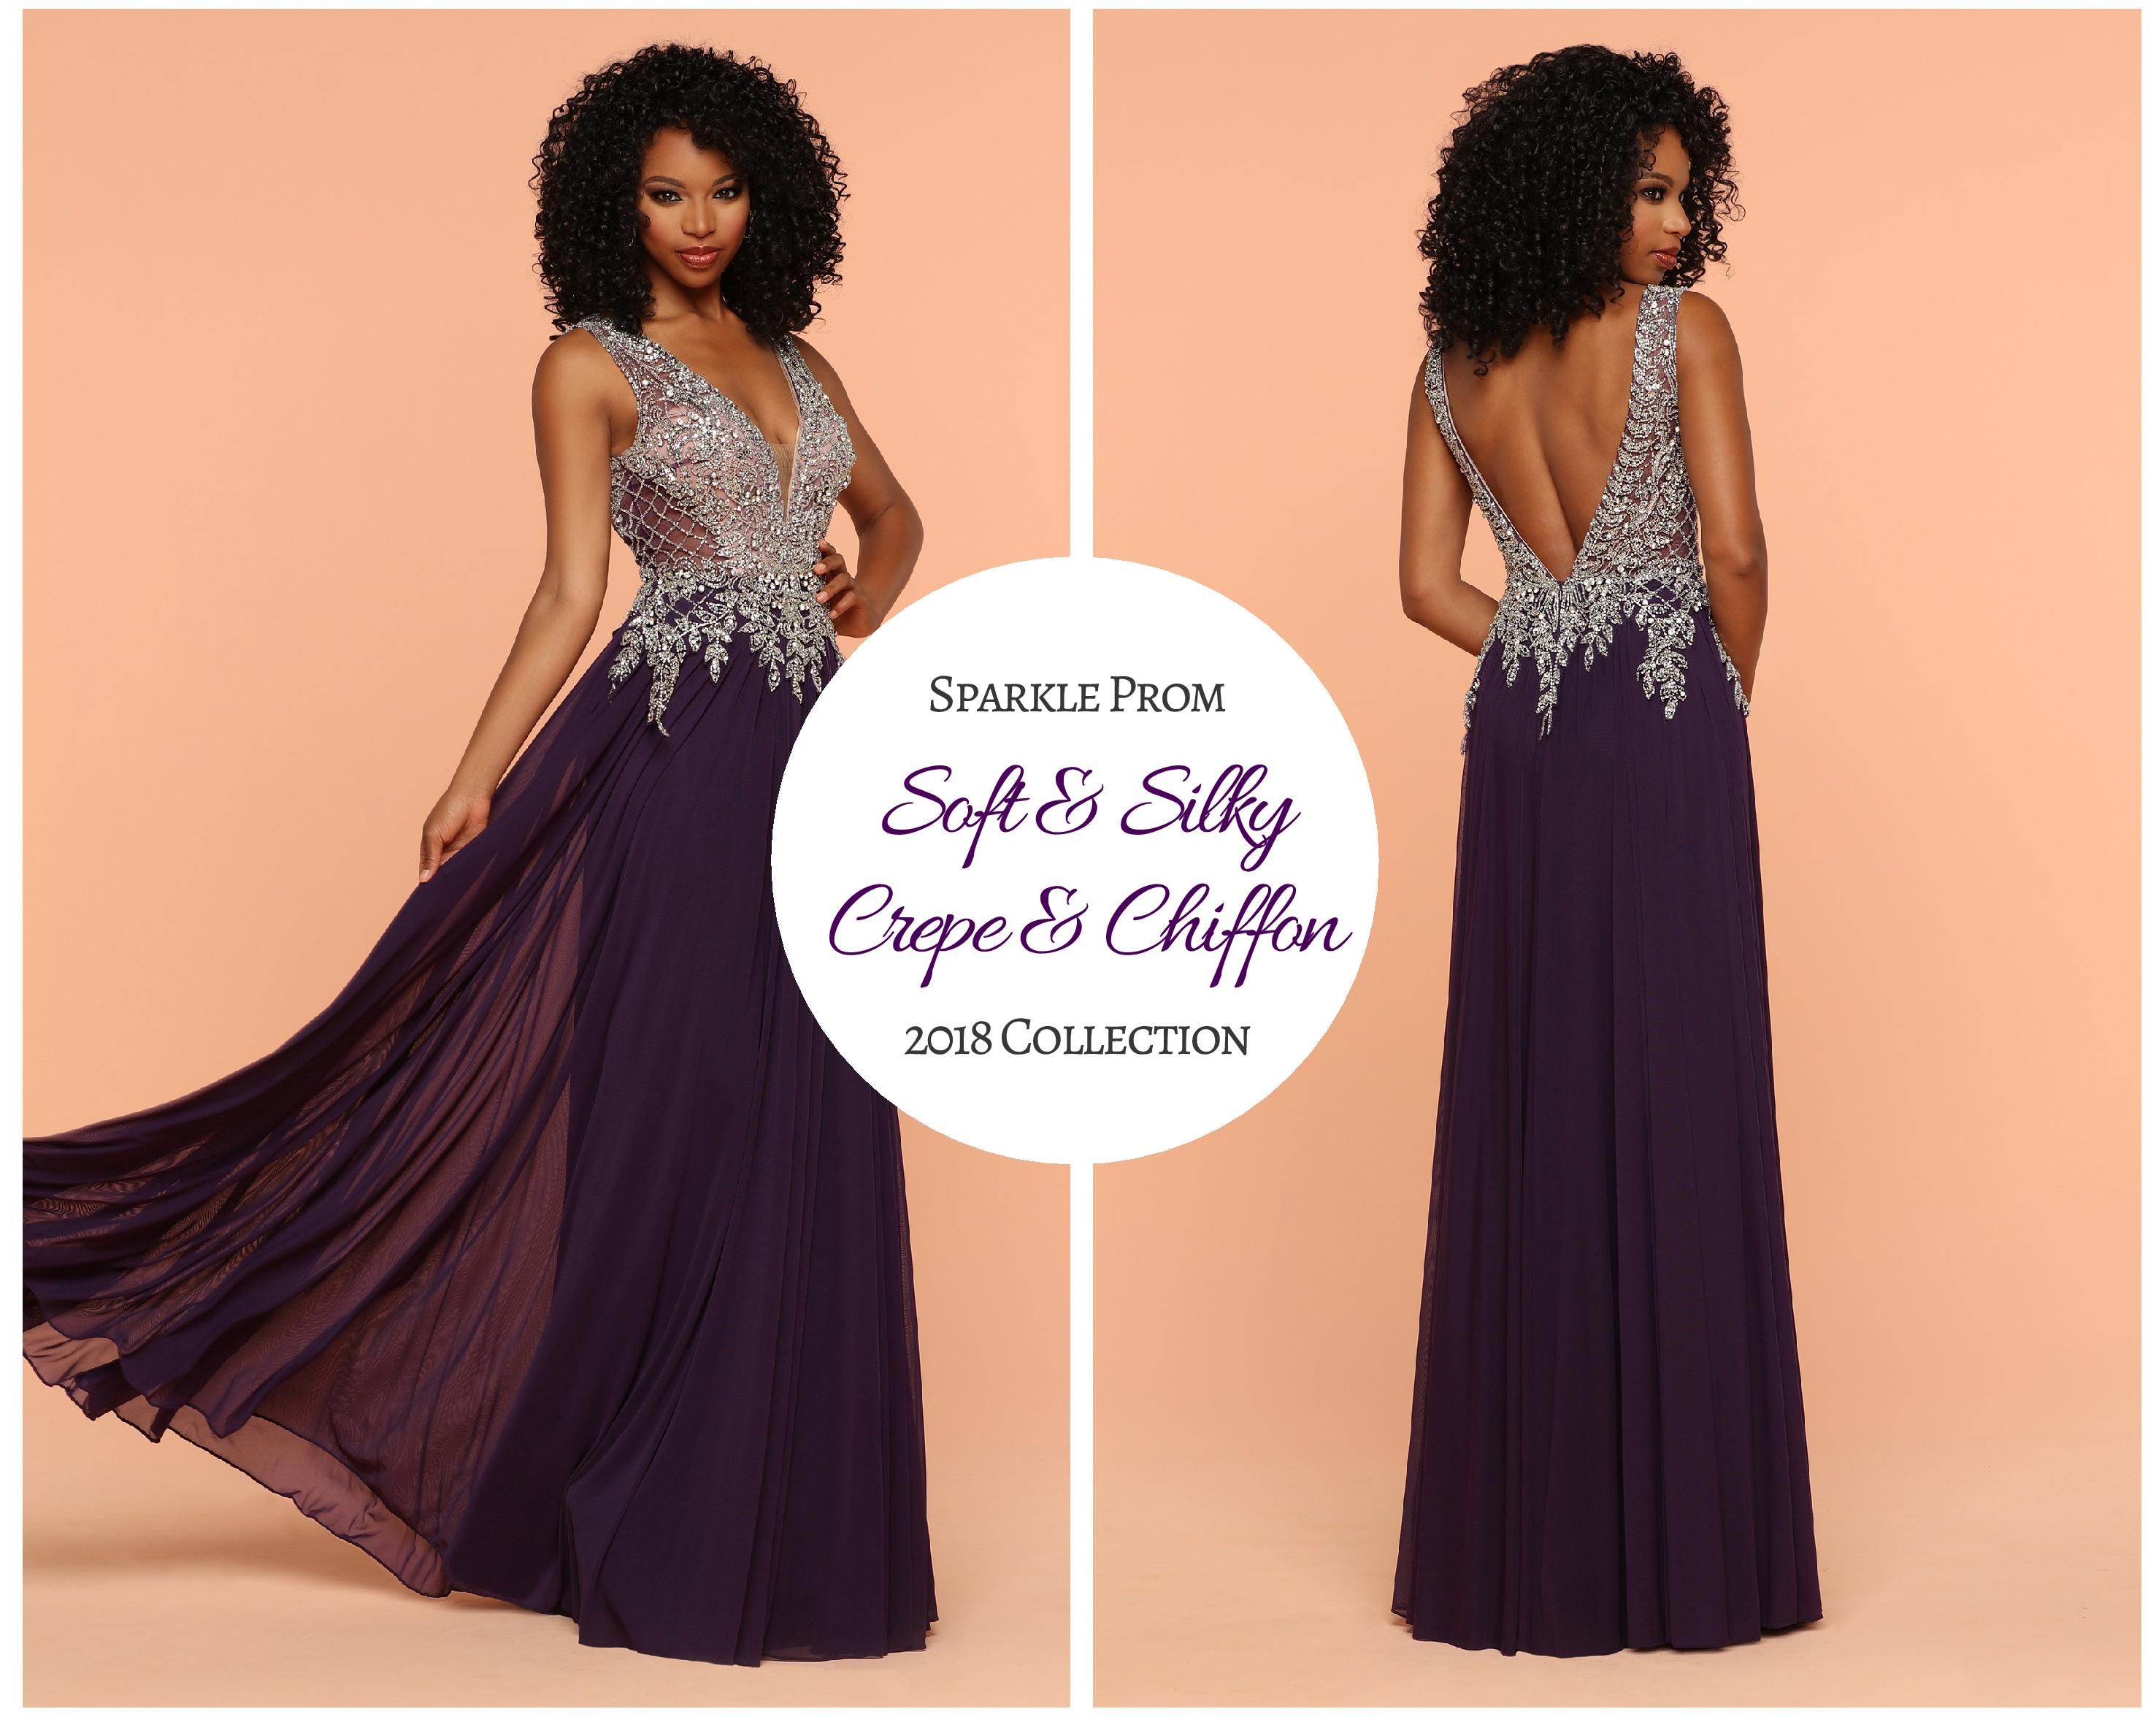 New Collection! Soft & Silky Sparkle Gowns: Crepe & Chiffon Dresses for Prom 2018